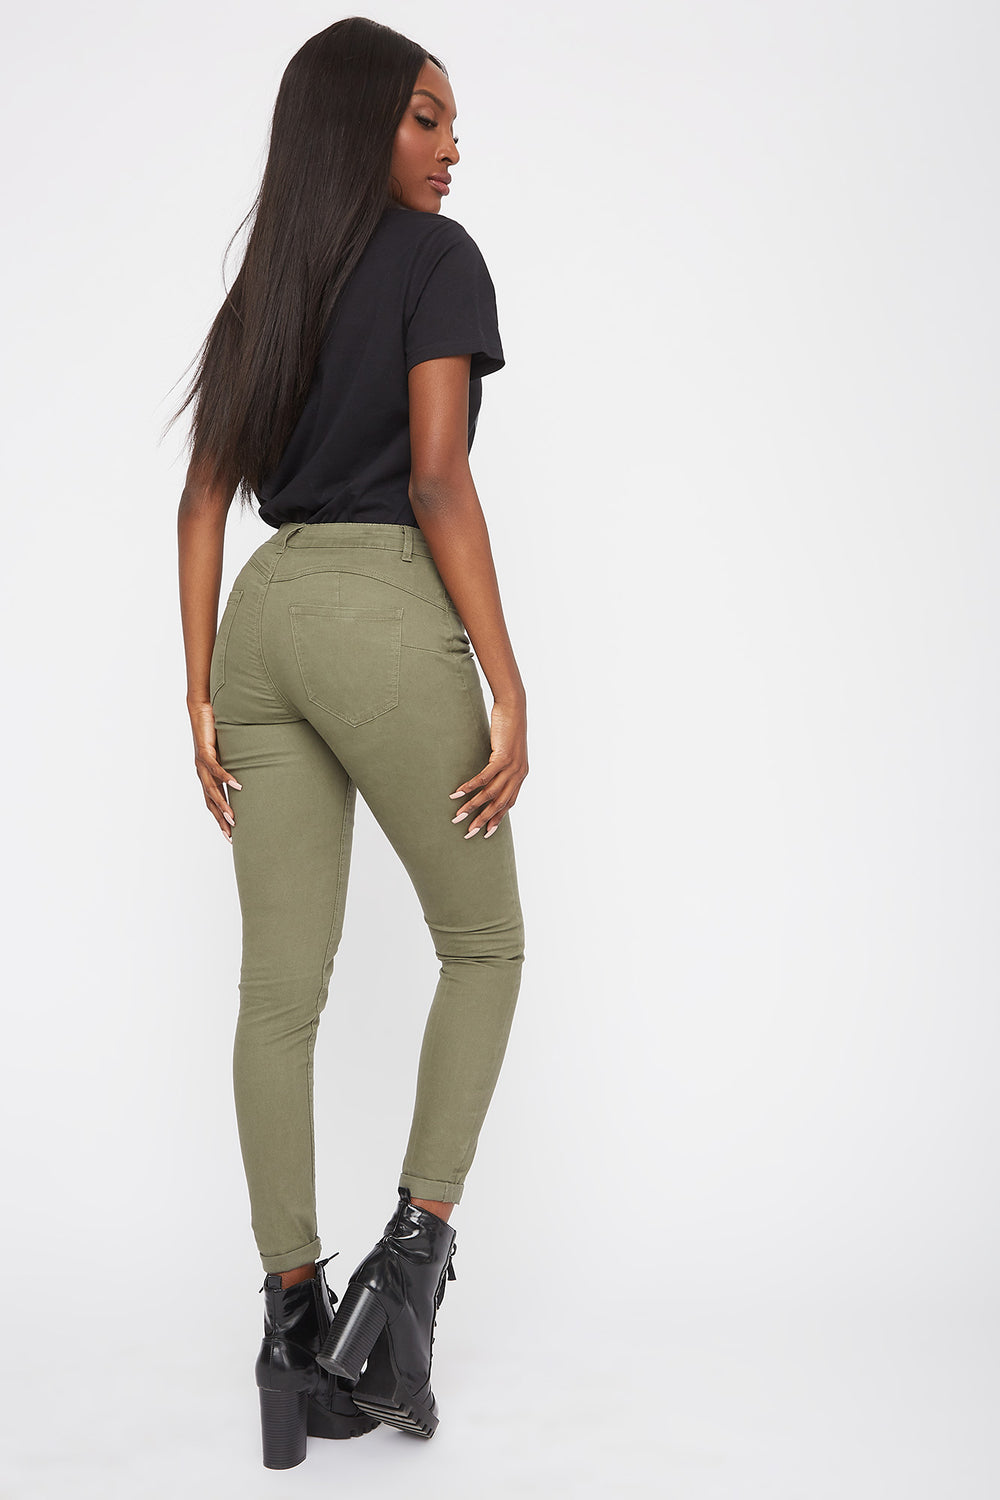 Mid-Rise Push-Up Skinny Jean Dark Green